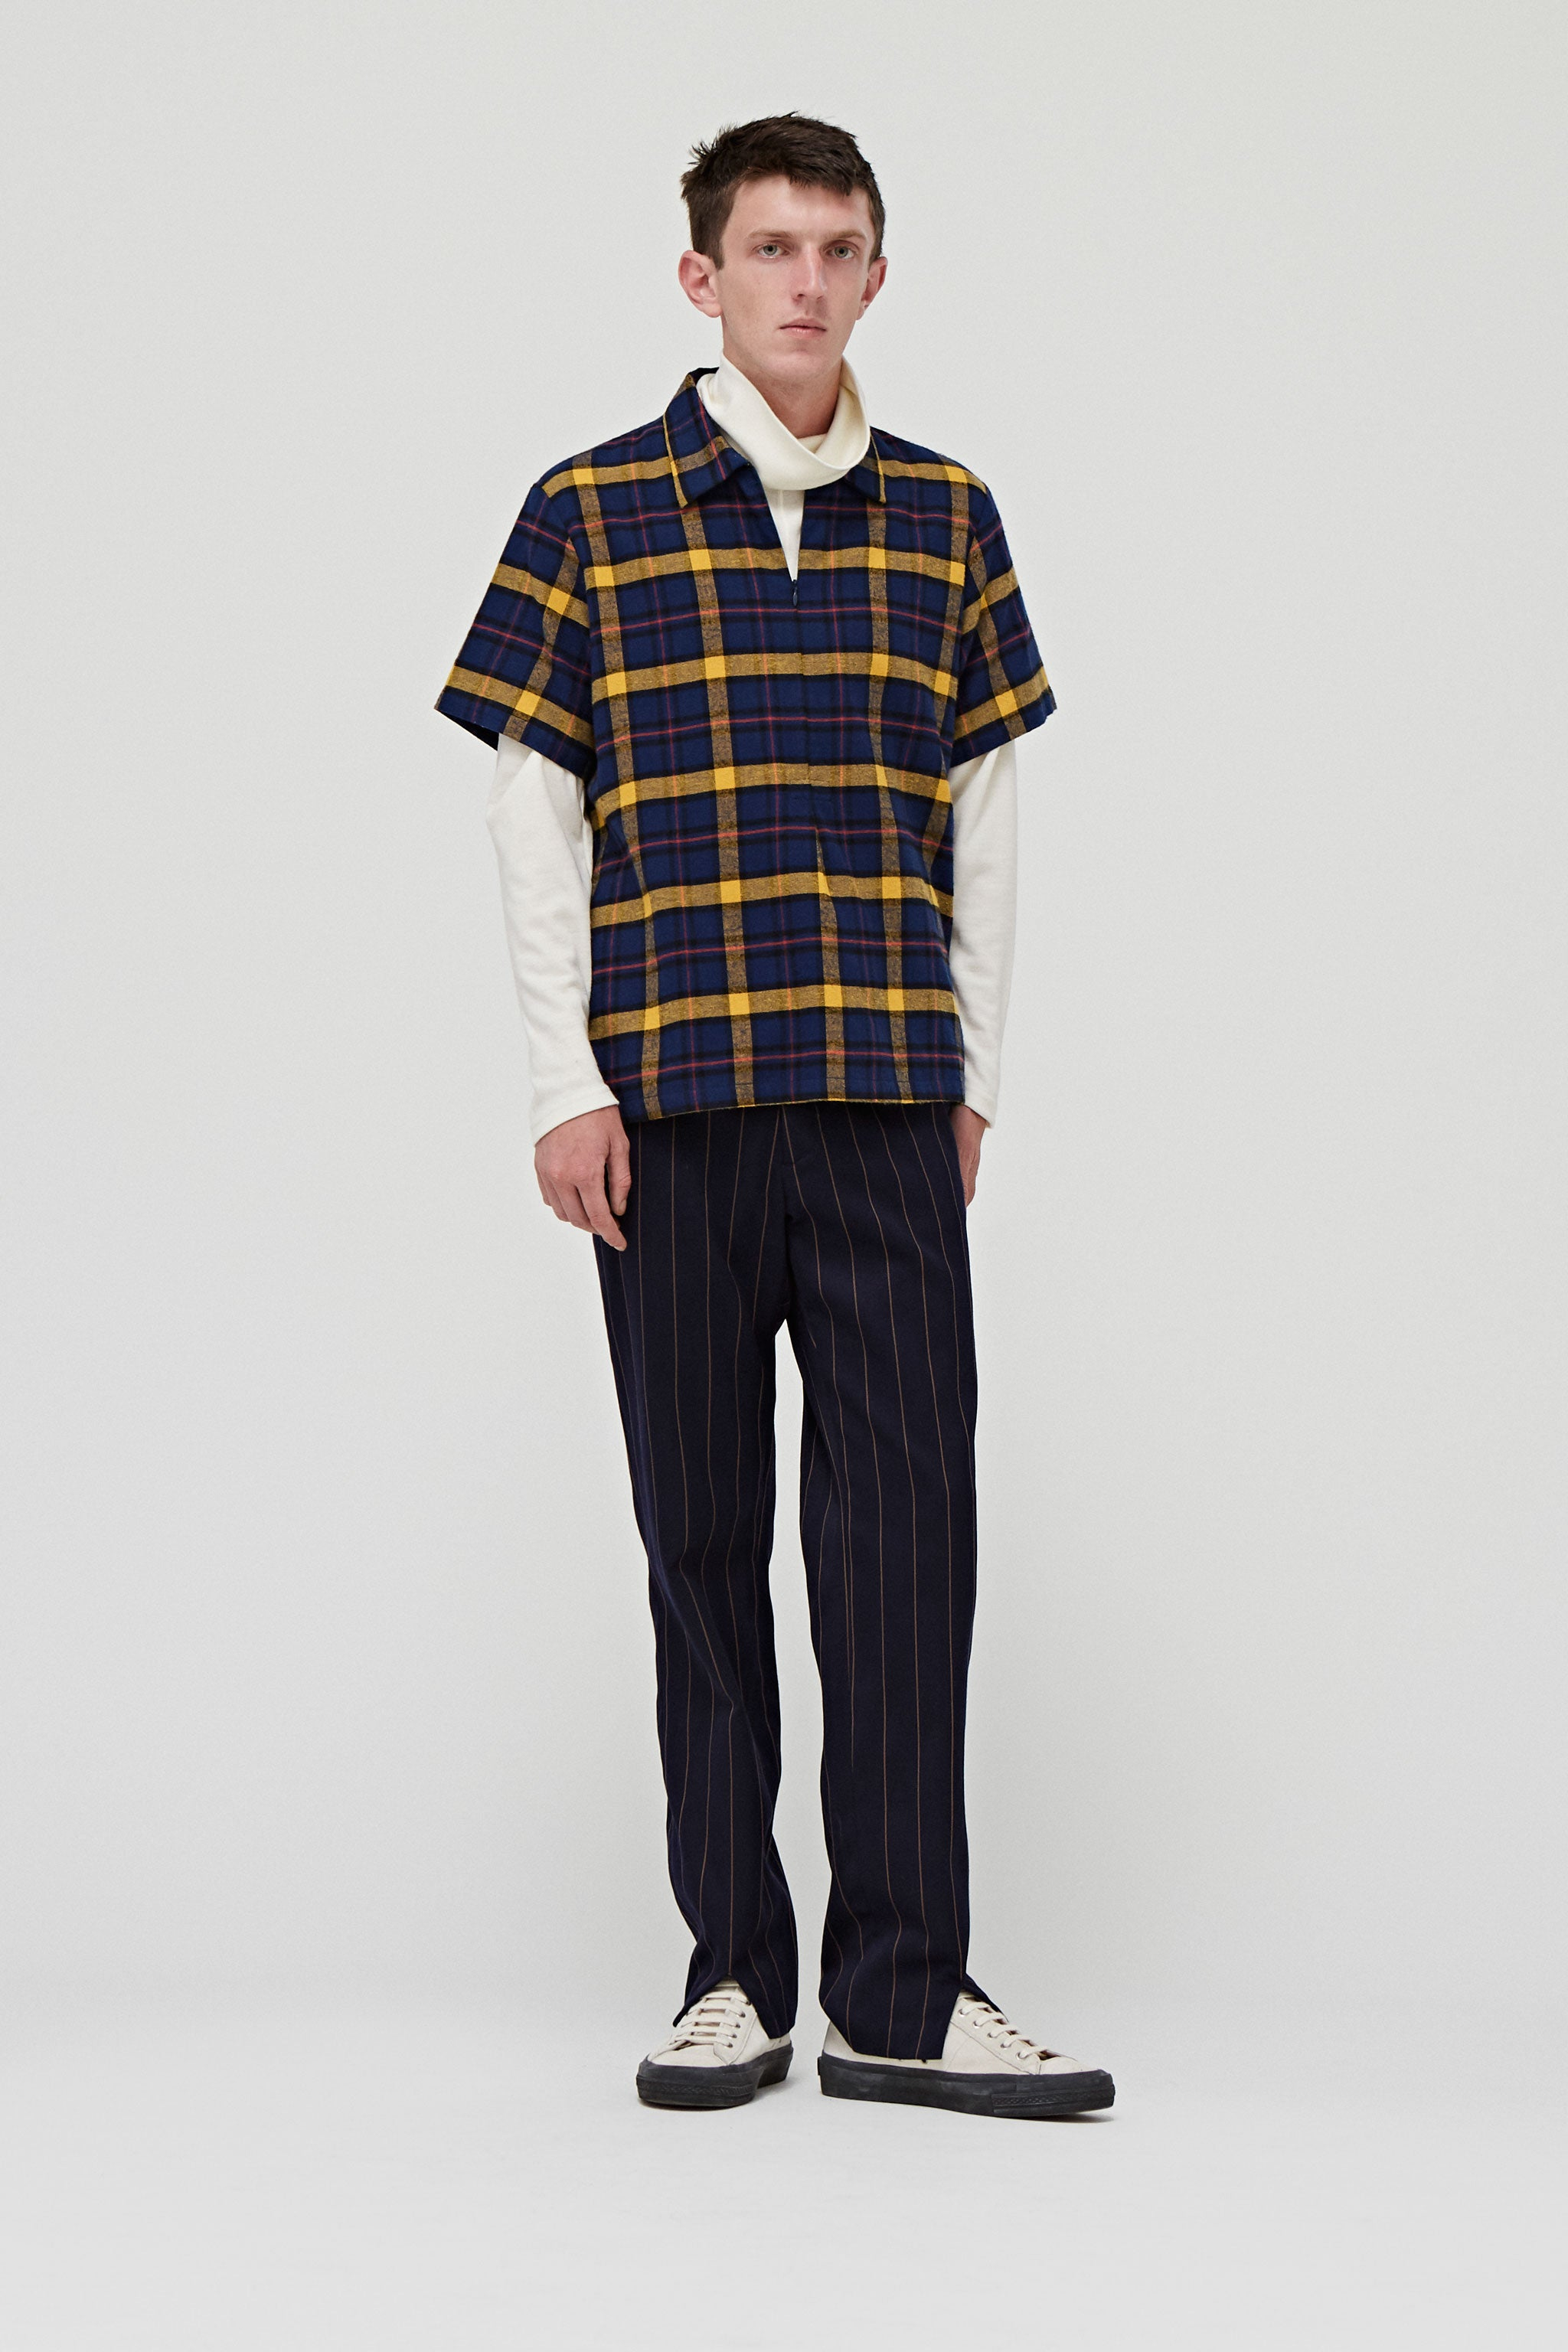 Goodfight FW18 Slicker Zip Polo Blue Plaid